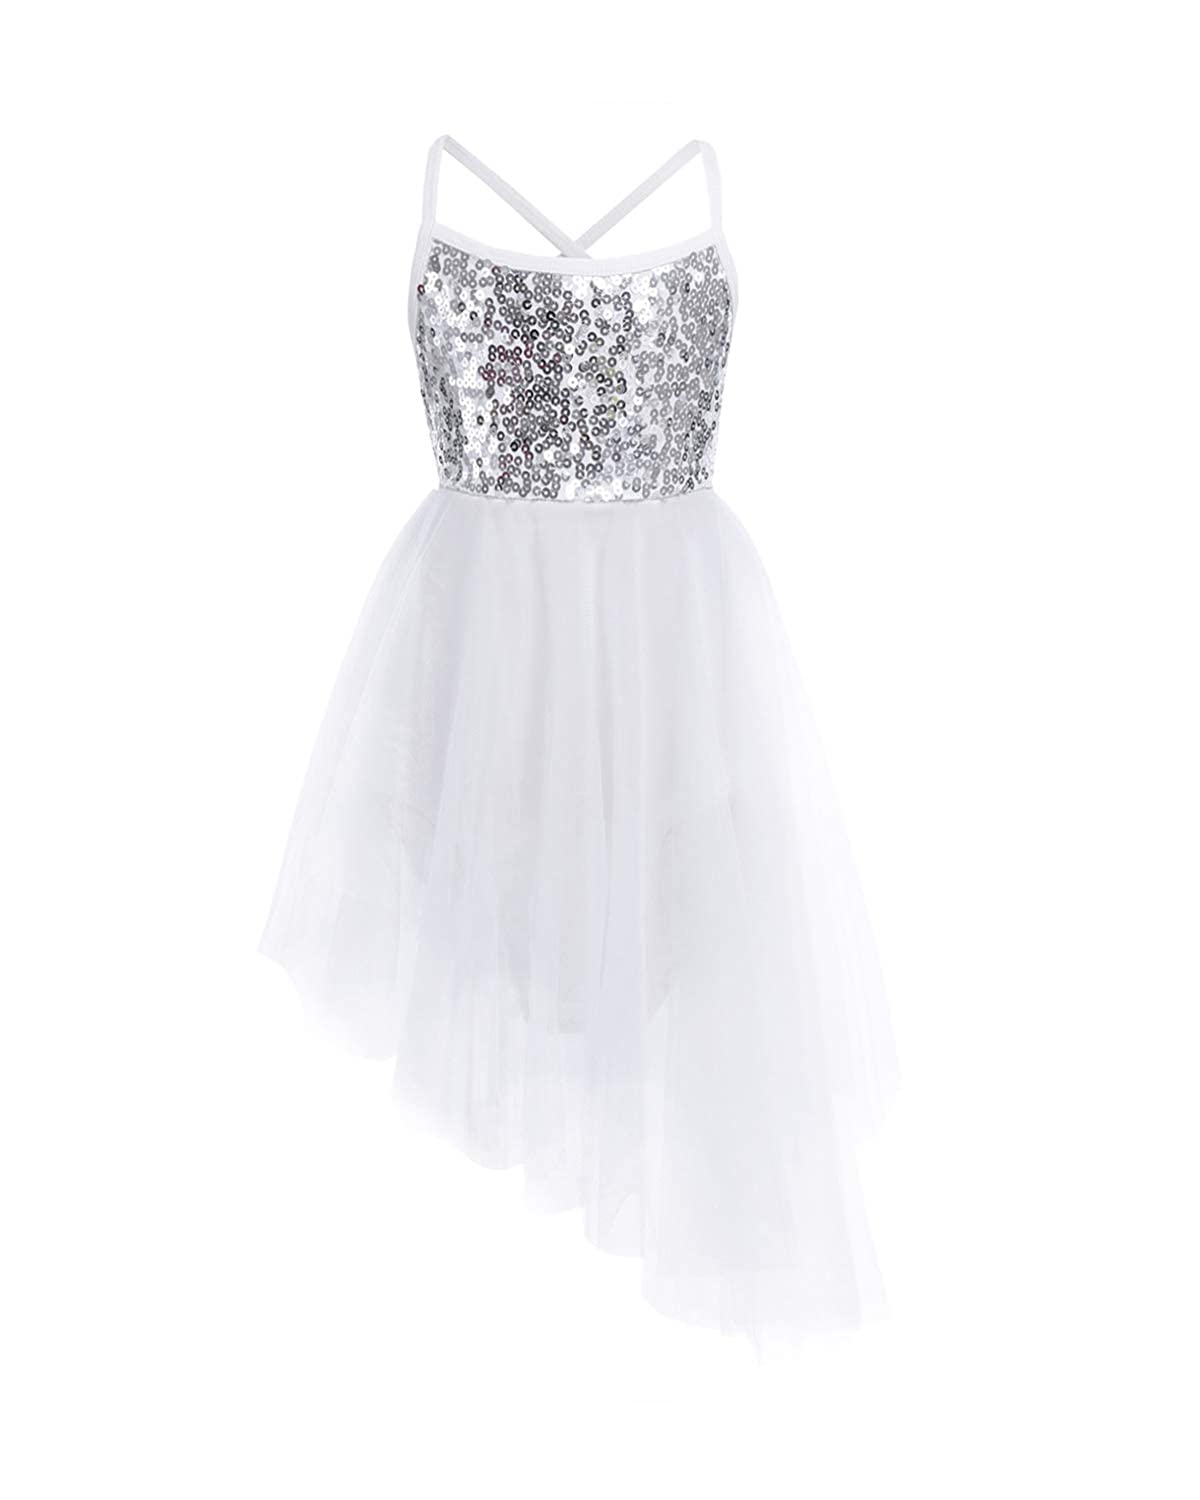 80dffe8d316d Child girl's shiny ballet dancer leotard dancewear costume. Top sequined  bodice, spaghetti straps crossed at back. Mesh skirt with ruffled trimmings  and ...